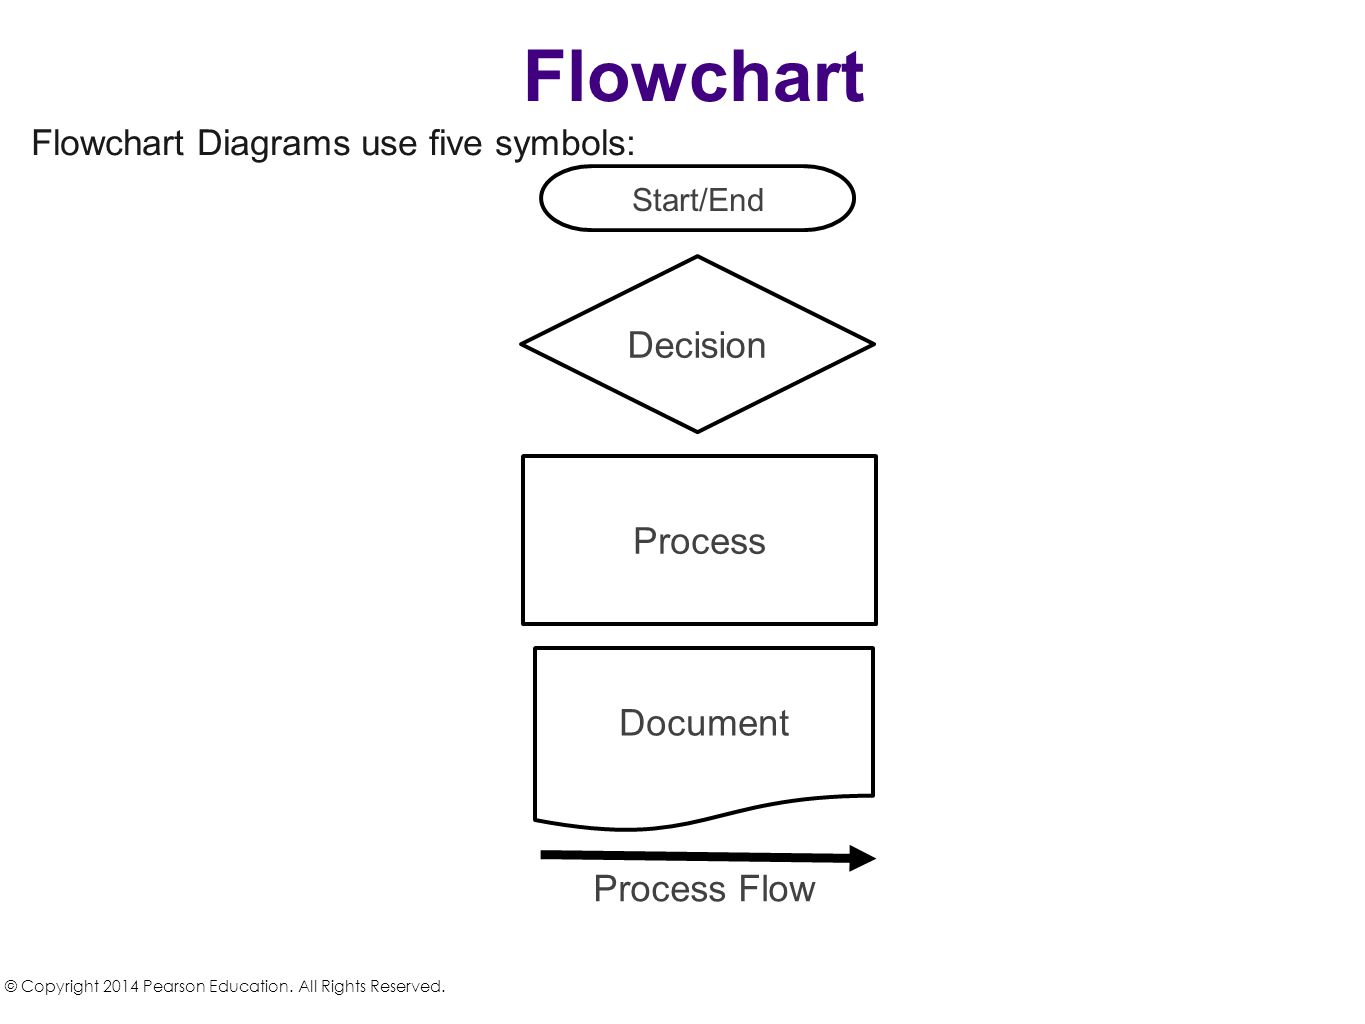 Accounting Systems Business Processes Chapter 4 Ppt Video Online Process Flow Diagram Uses Flowchart Decision Document